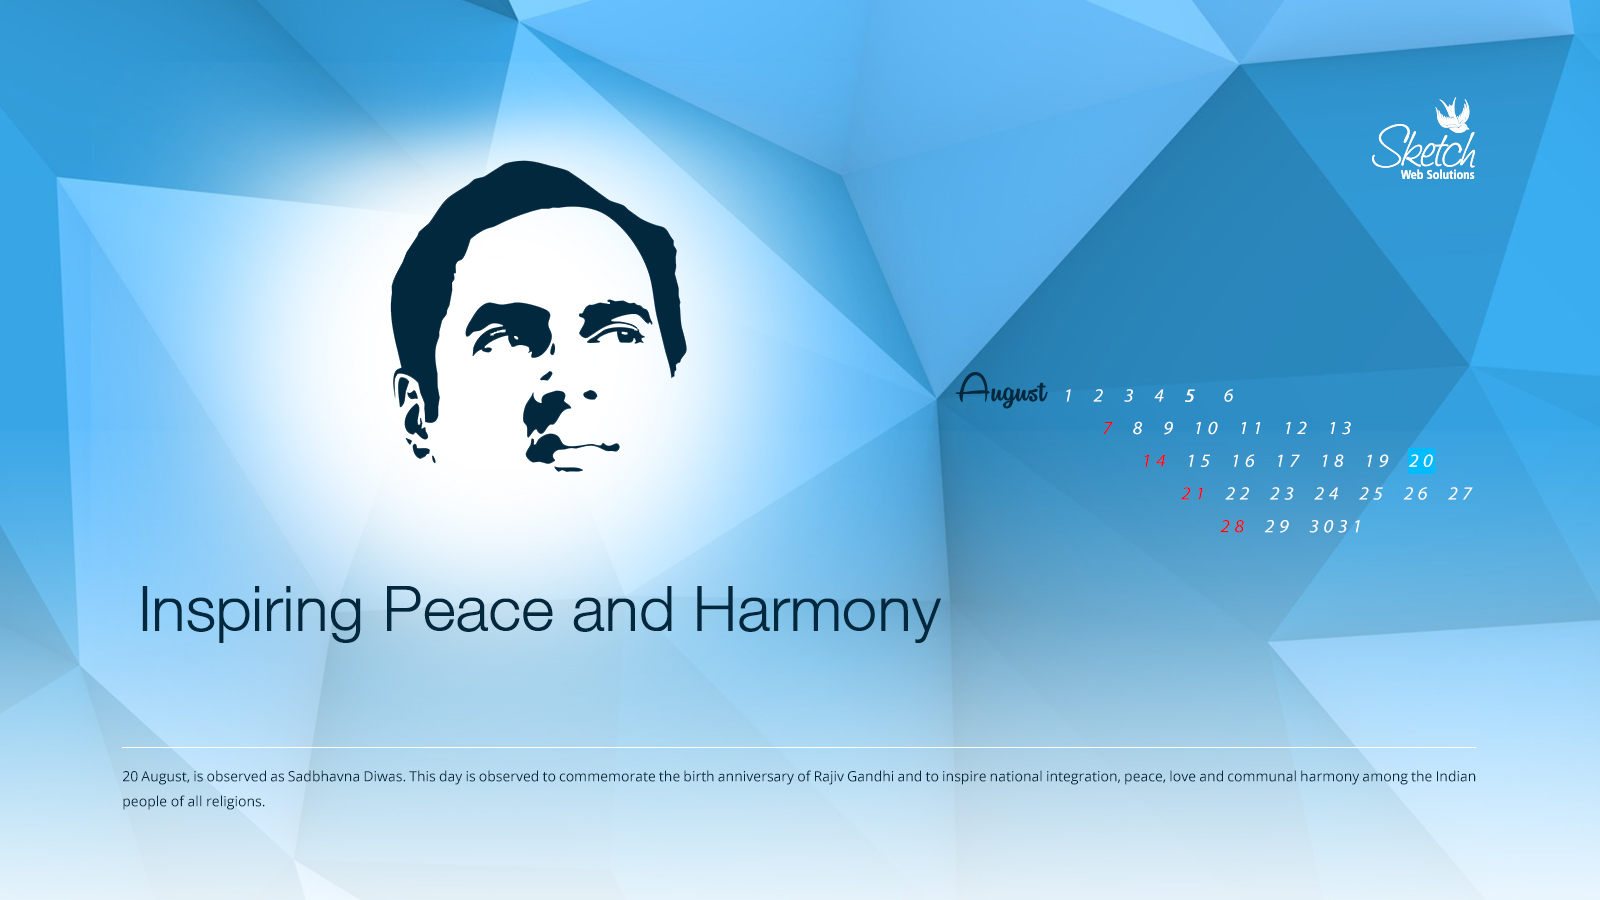 Inspiring Peace and Harmony